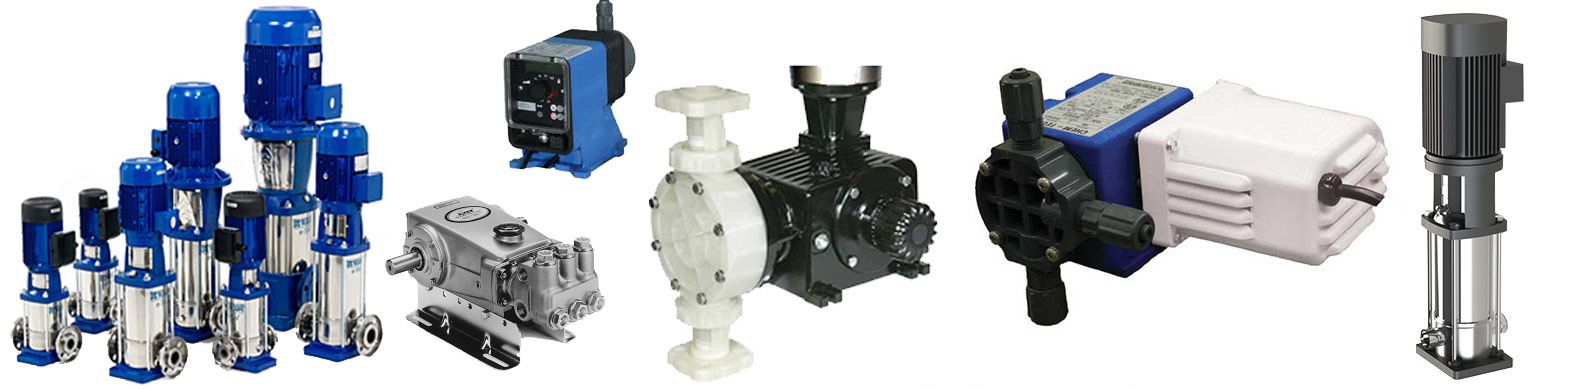 commercial water pumps parts and components